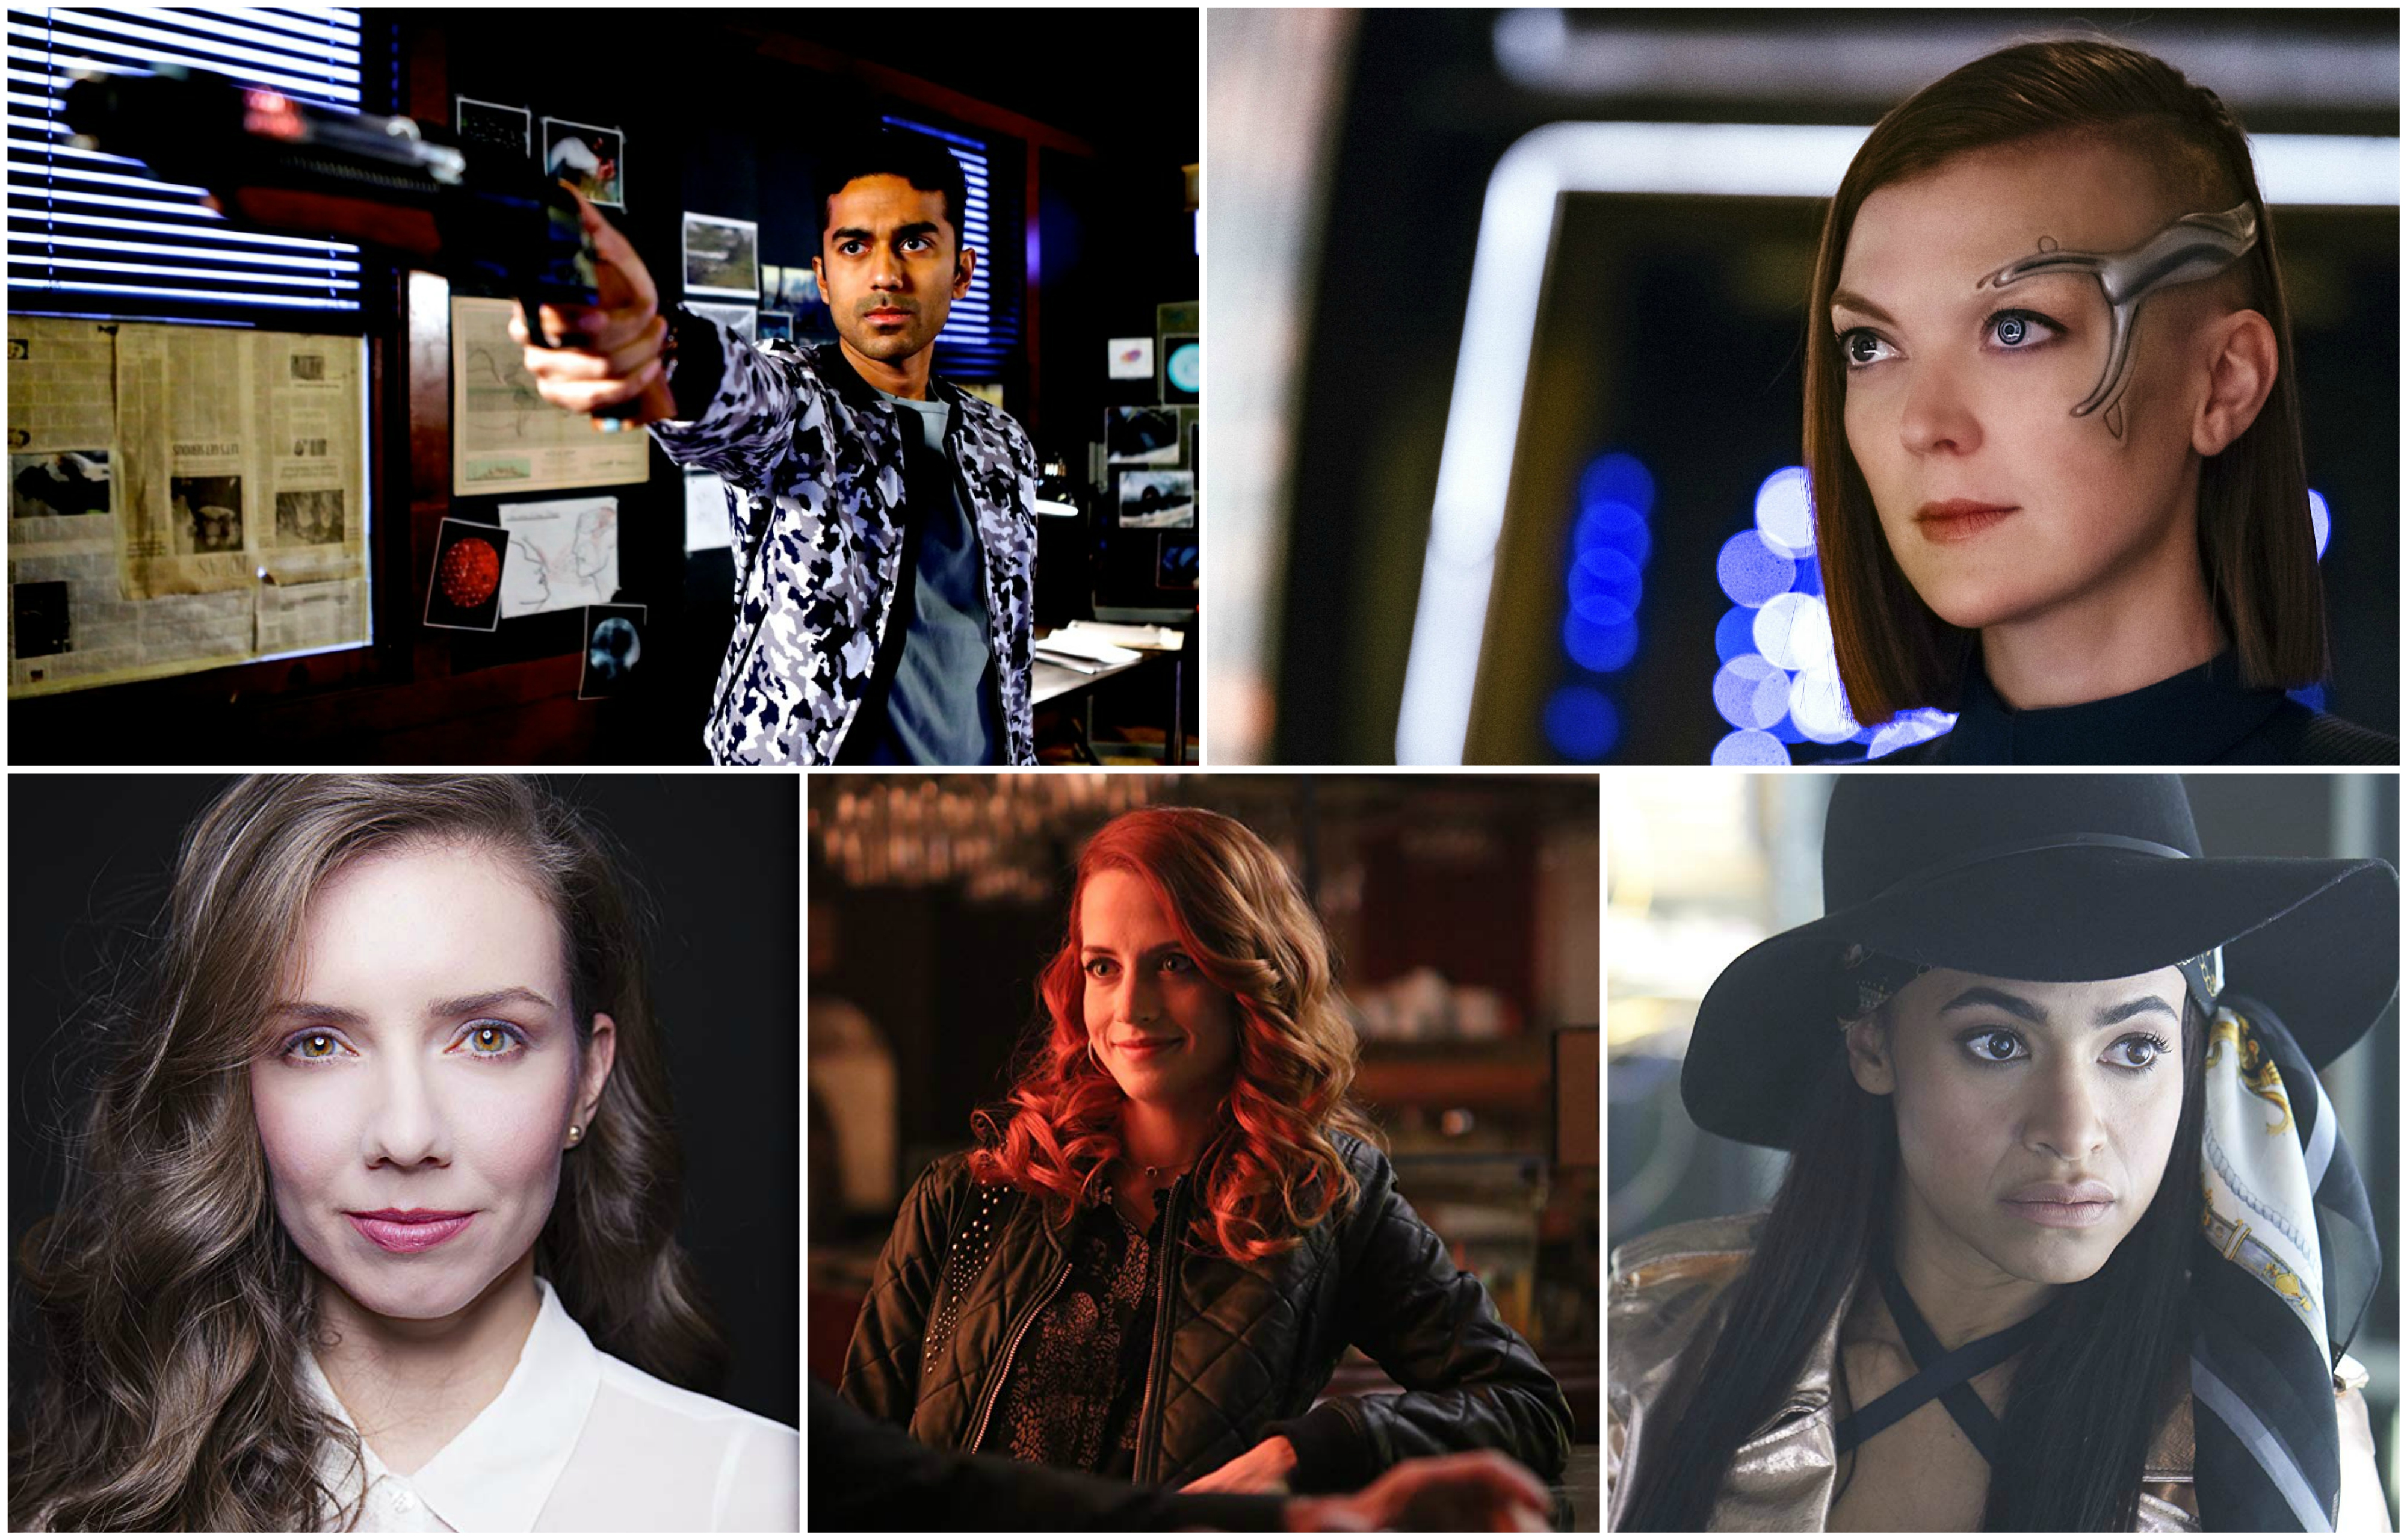 Five photos inset in a box, clockwise from top left: wide shot of man holding a futuristic gun, close-up of woman on spaceship, close-up of a woman wearing a black hat, wide shot of a woman at a bar, close-up of a woman looking into the camera